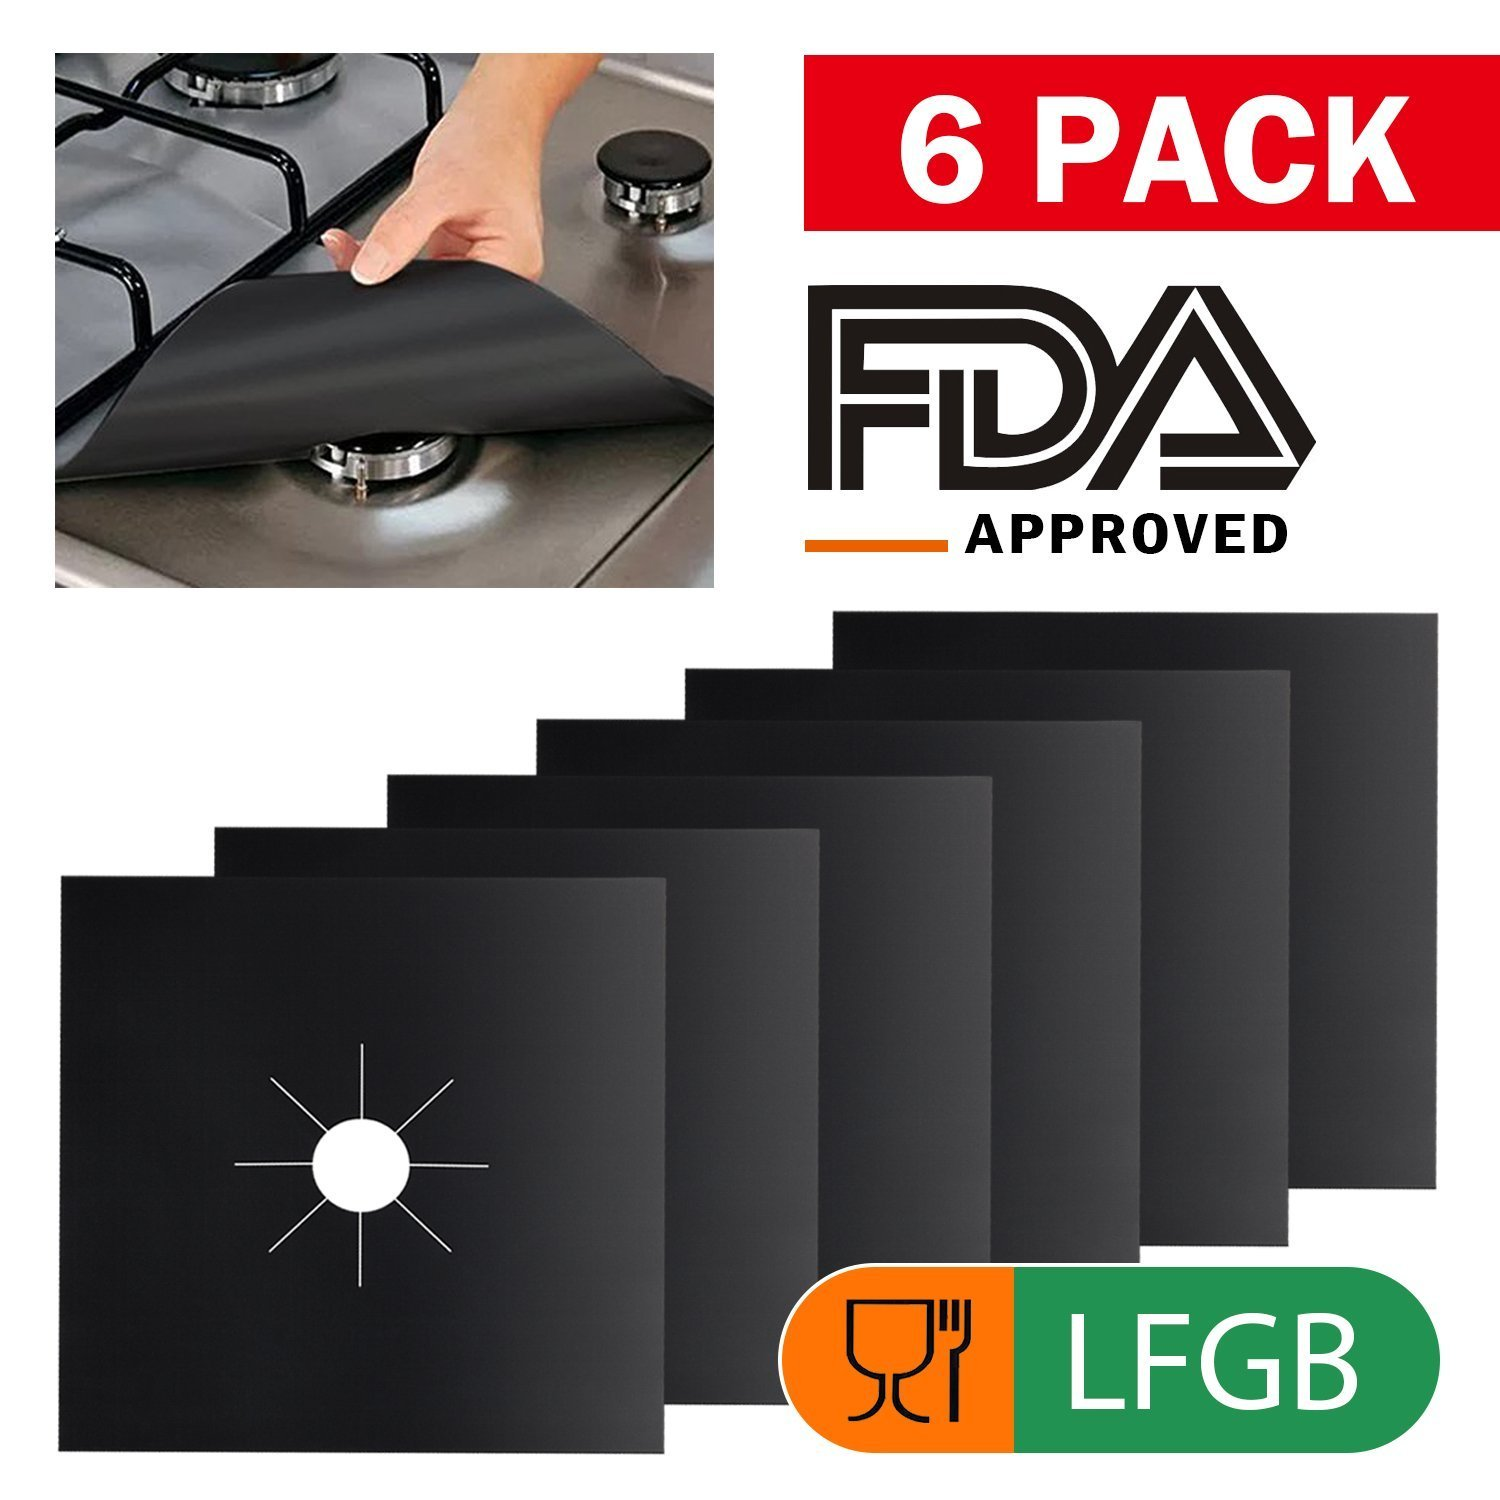 Gas Stove Burner Covers 6 Pack, Wimaha Double Thickness Gas Range Protectors with FDA Approved, Reusable, Non-Stick, Heat-resistant, Black (10.6